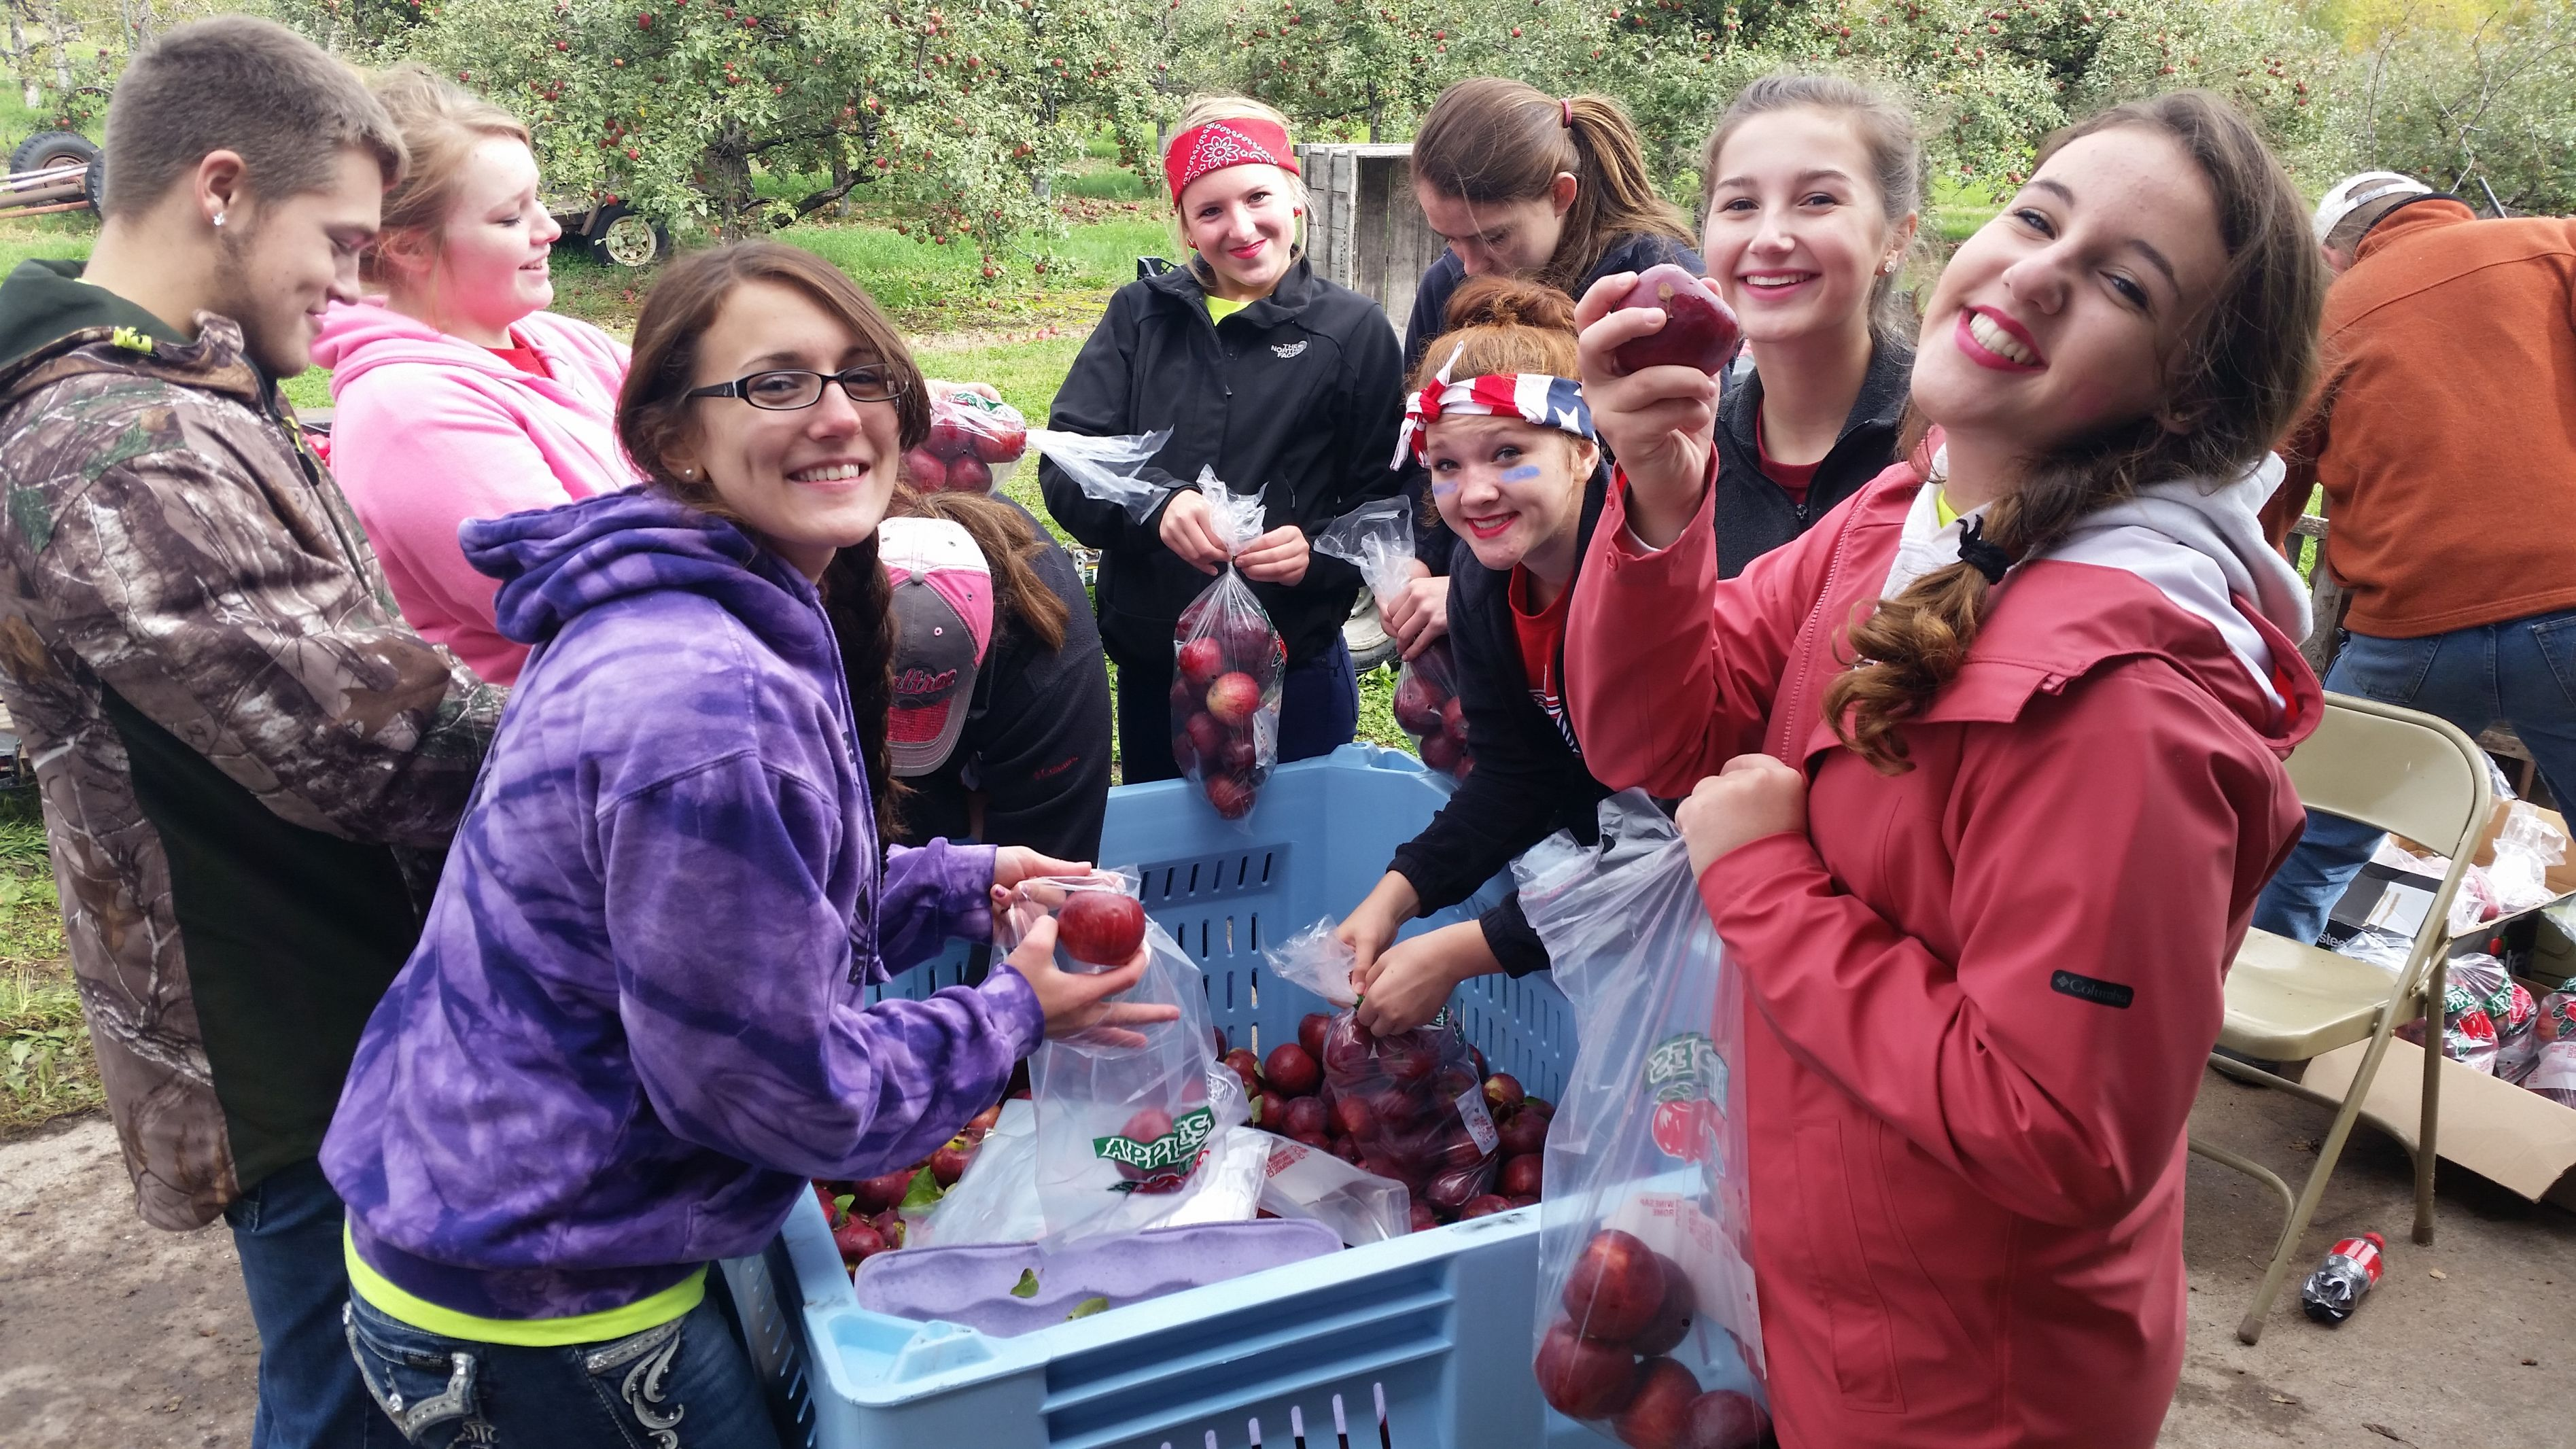 b_3790_2132_16777215_00_images_articles_cocurriculars_ffa_apples.jpg